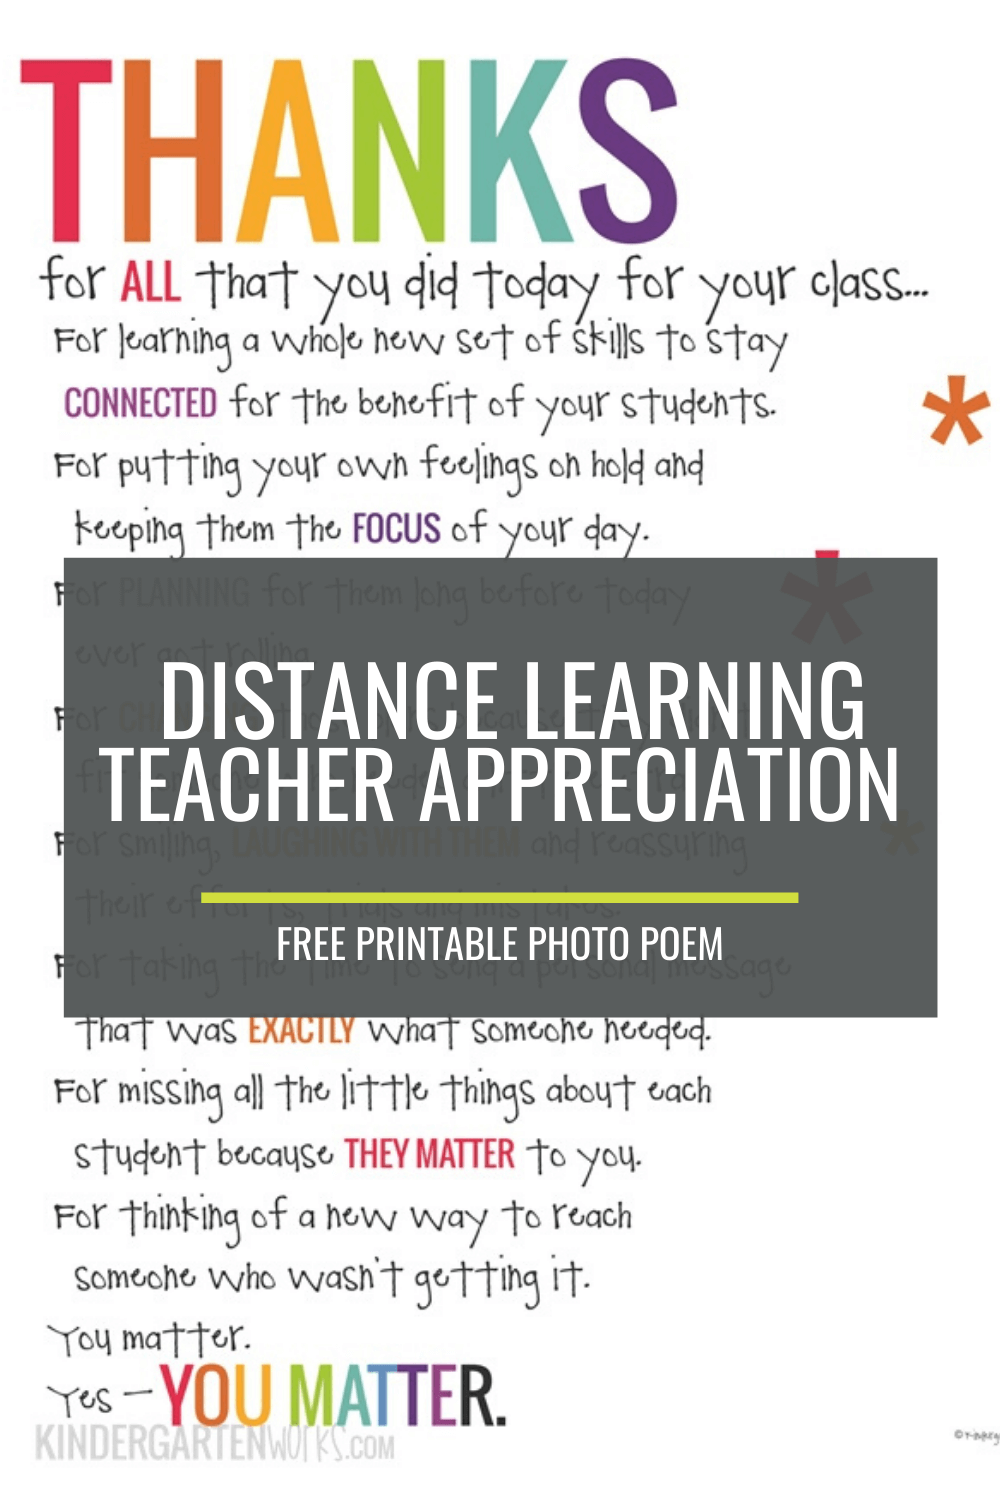 If You Didn\'t Hear This From Anyone Today (Teacher Appreciation Poem)